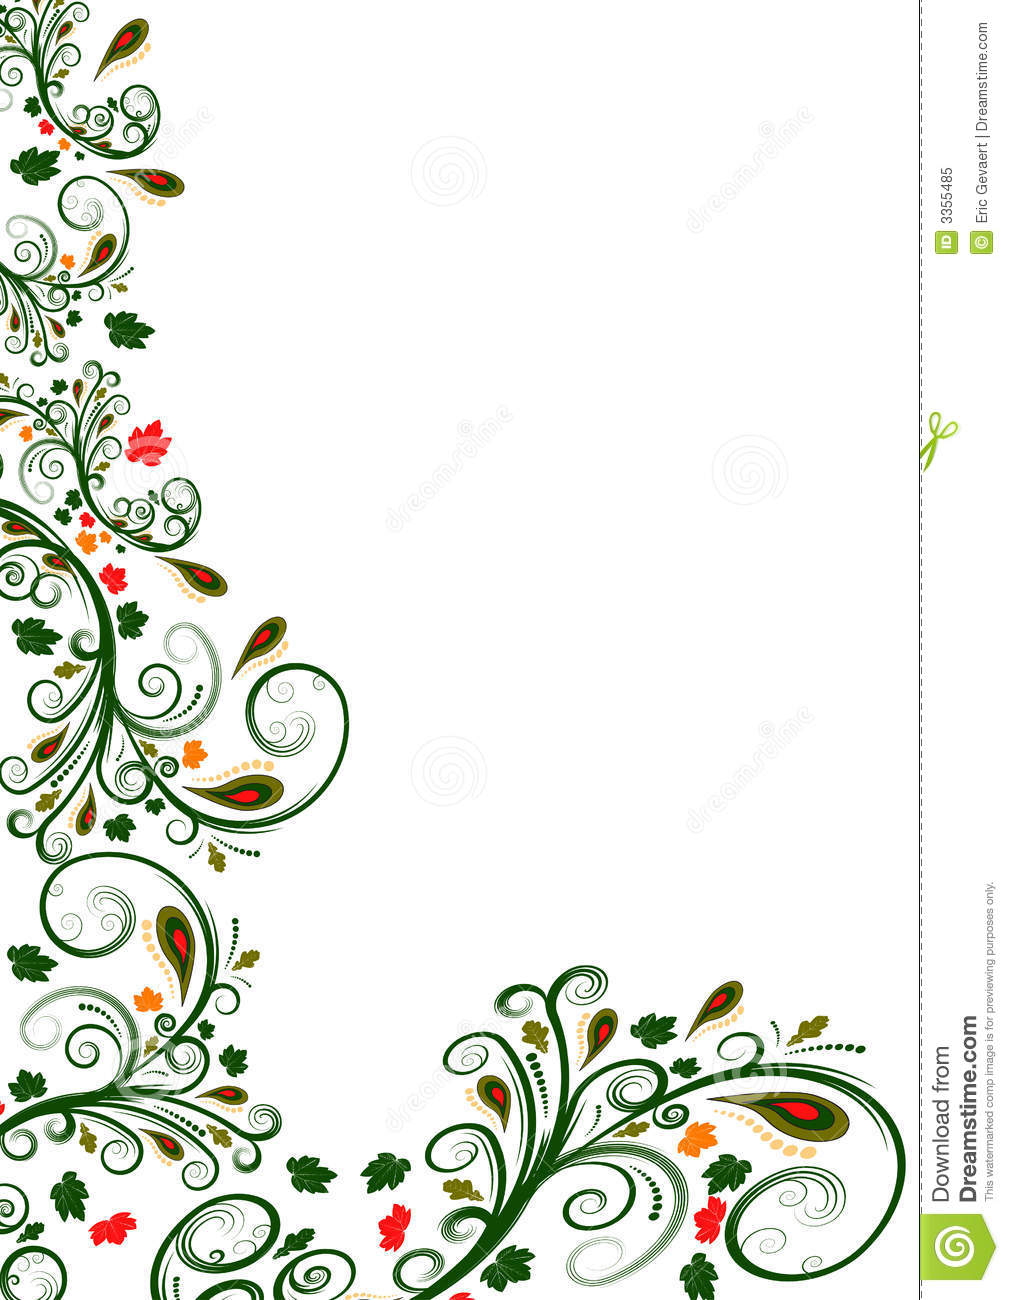 Royalty Free Stock Photo  Vector floral border designVector Floral Border